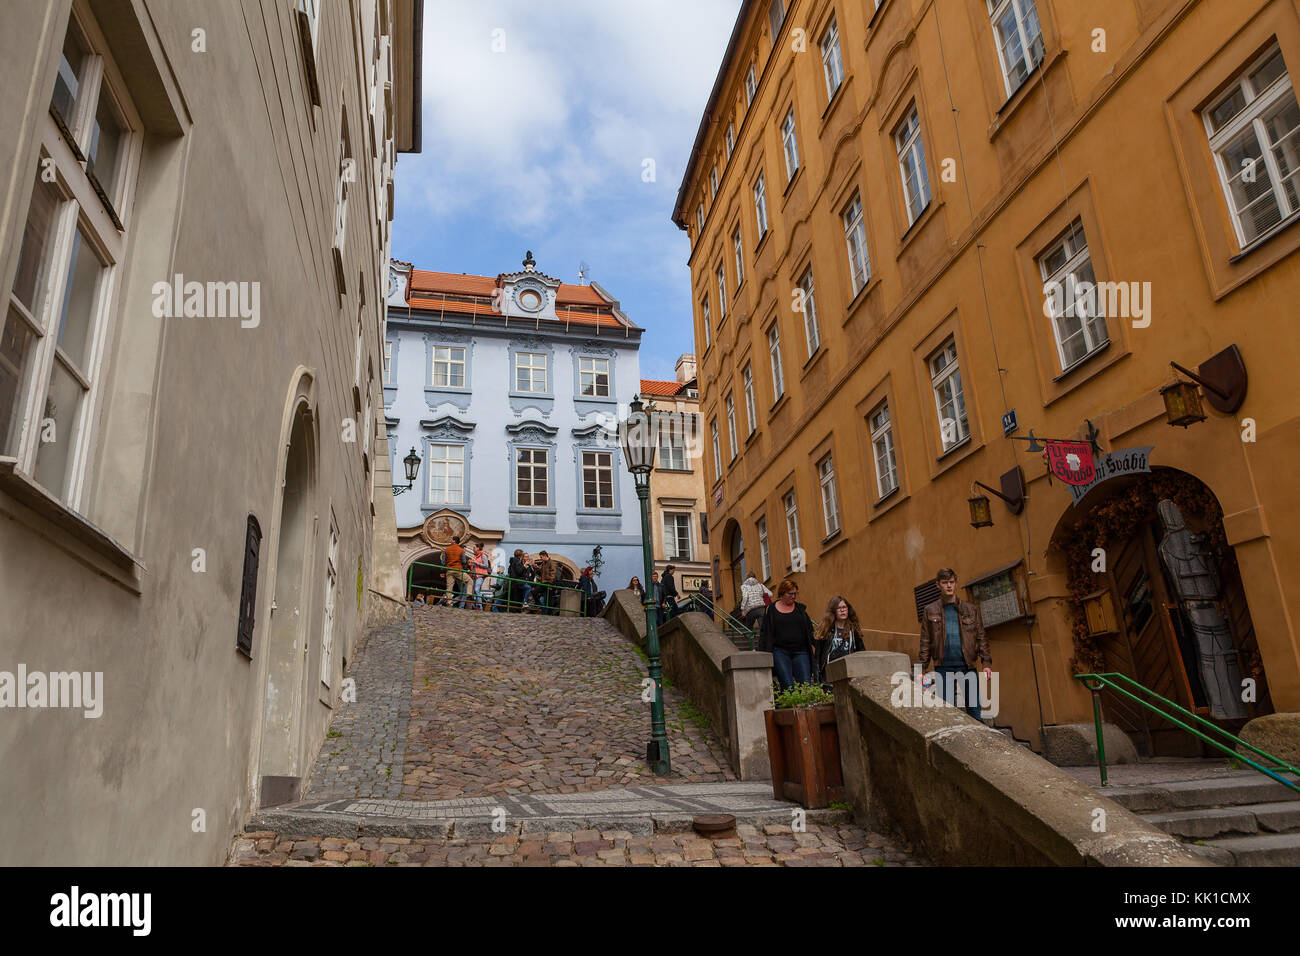 PRAGUE, CZECH REPUBLIC - APRIL 09, 2017: Tourists walking along streets of  old town at sunny day